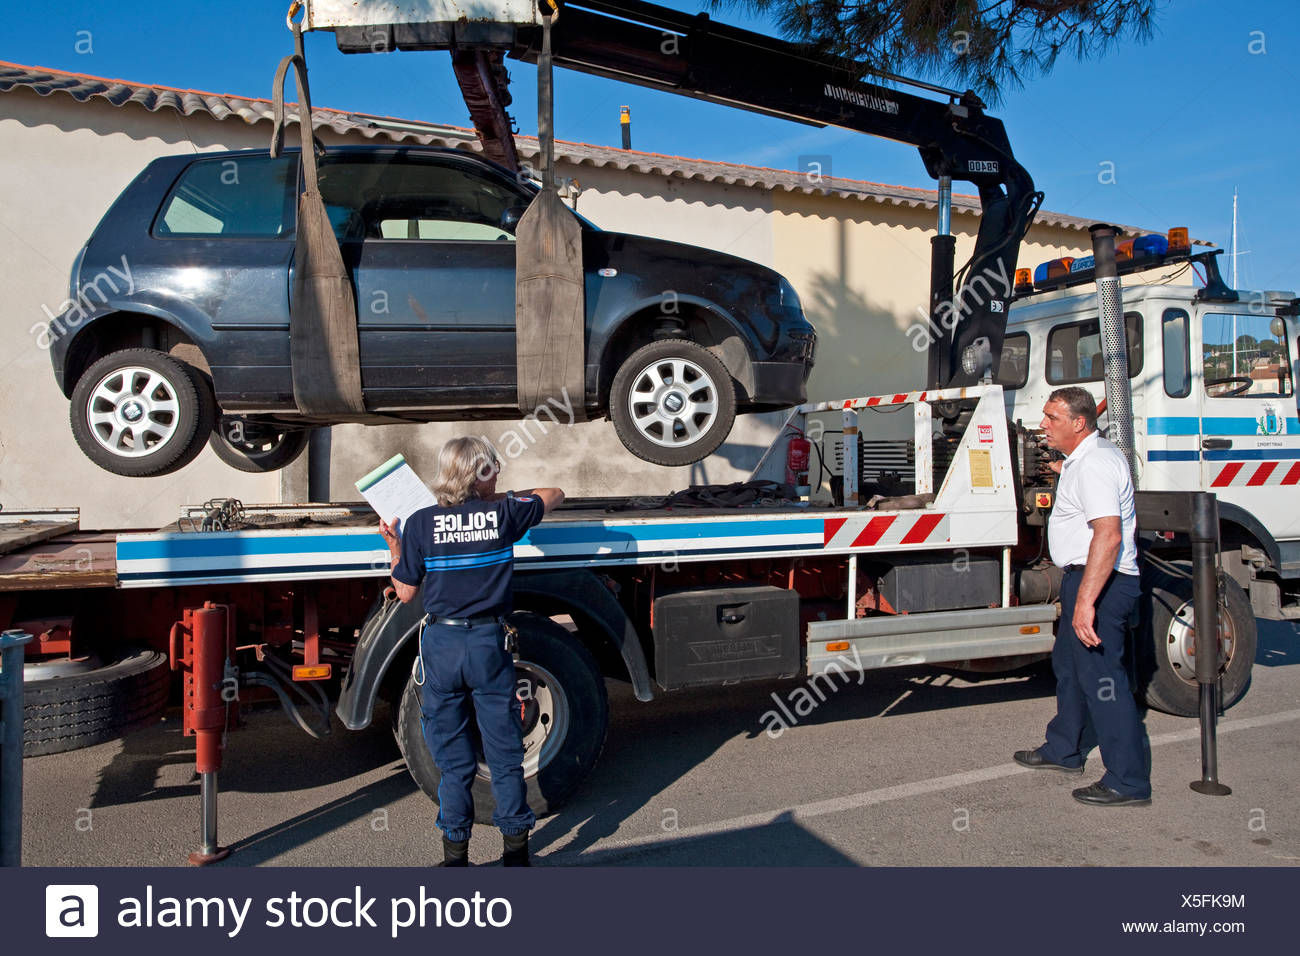 An illegally parked car being towed away, the port of St Tropez, Var, Cote d'Azur, Southern France, France, Europe - Stock Image